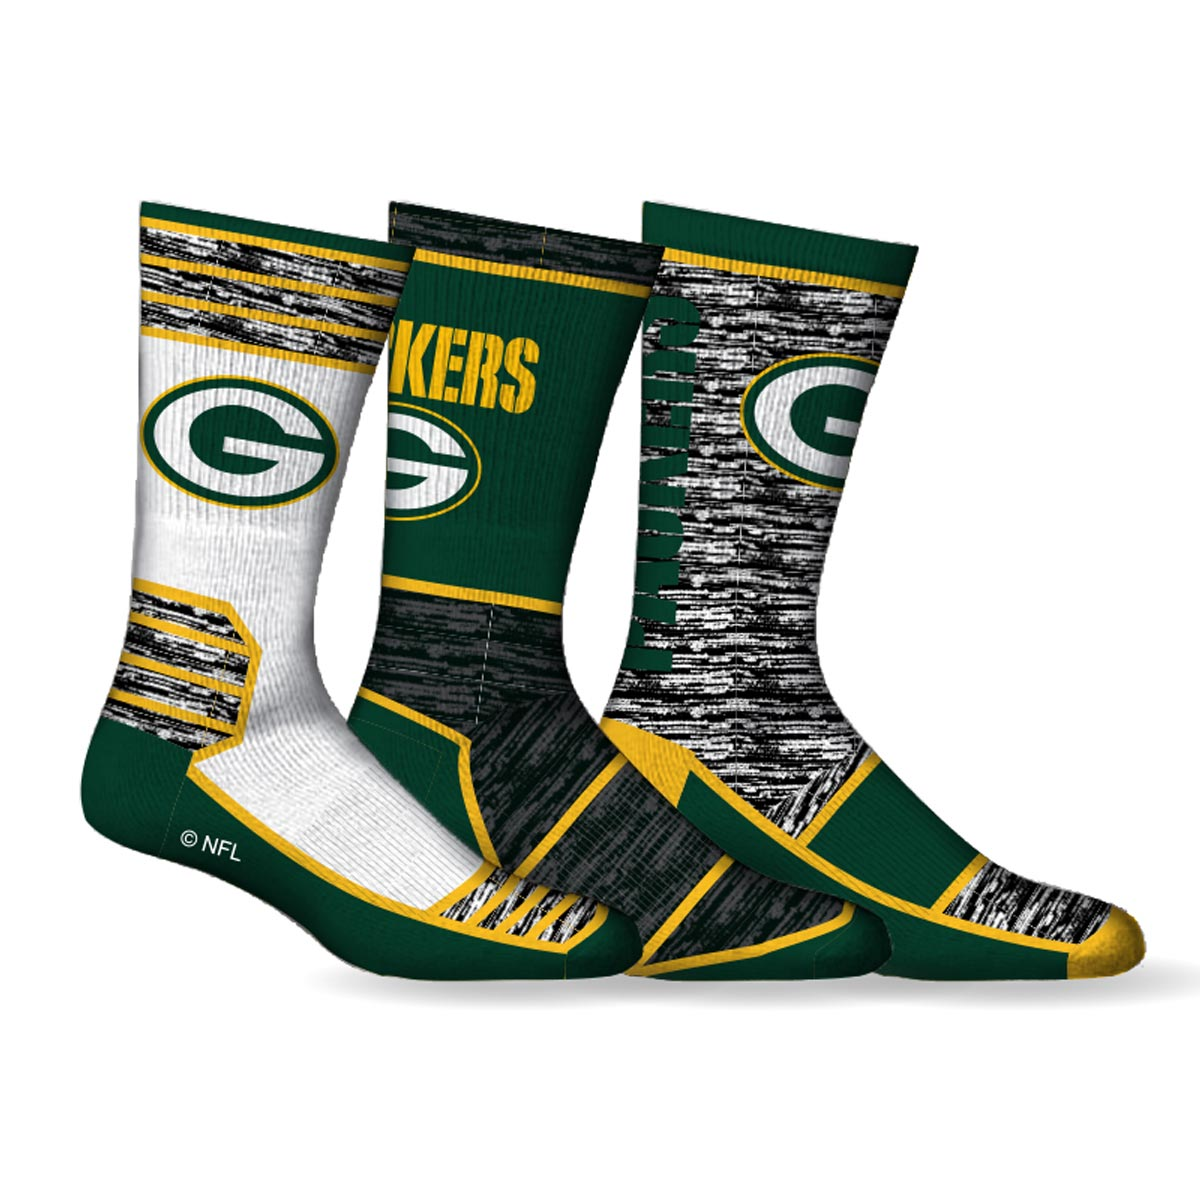 Green Bay Packers NFL Men's 3-Pack Crew Sport Socks